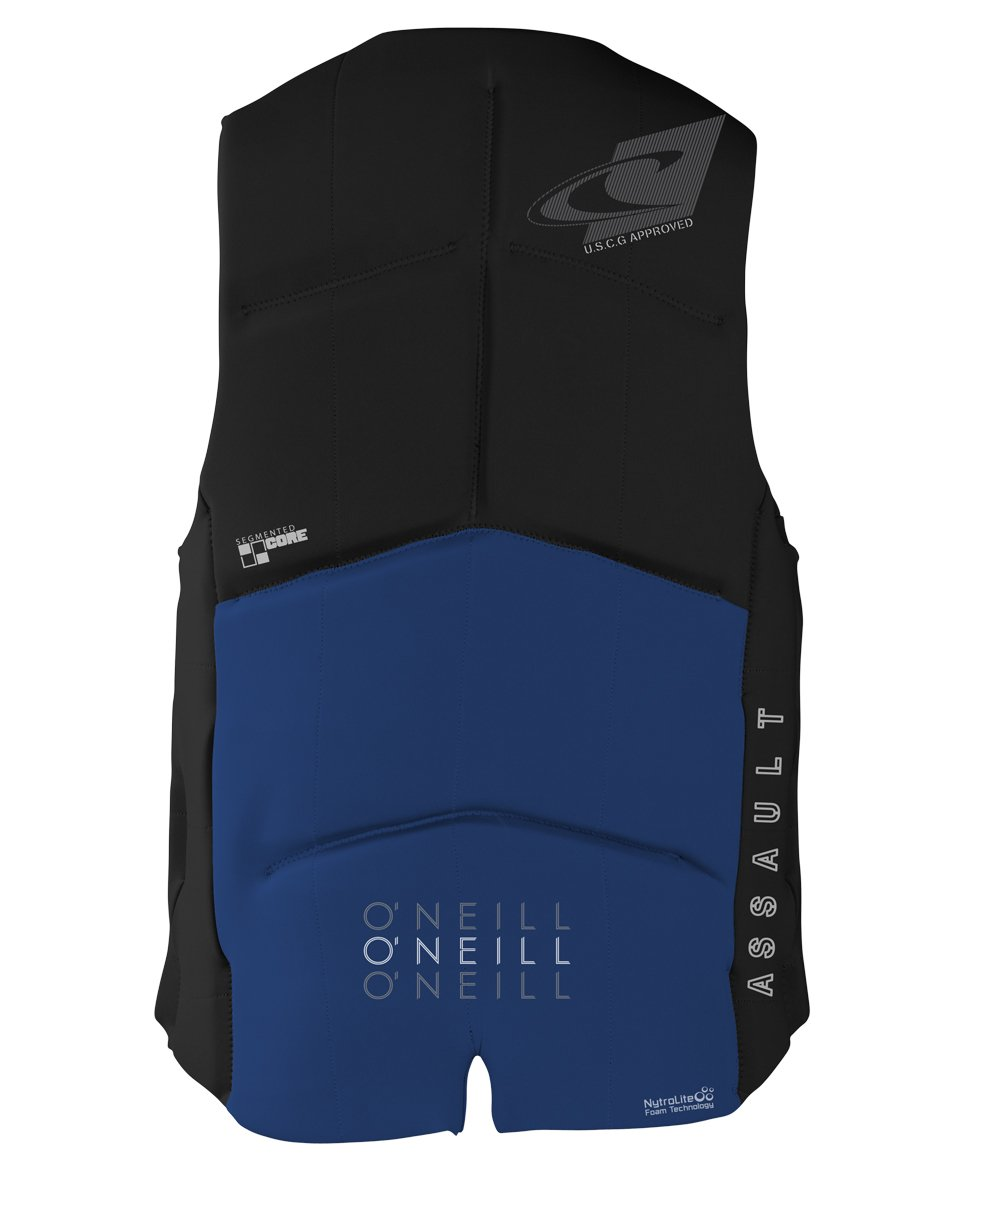 O'Neill Wetsuits Men's Assault USCG Life Vest, Pacific/Black by O'Neill Wetsuits (Image #2)